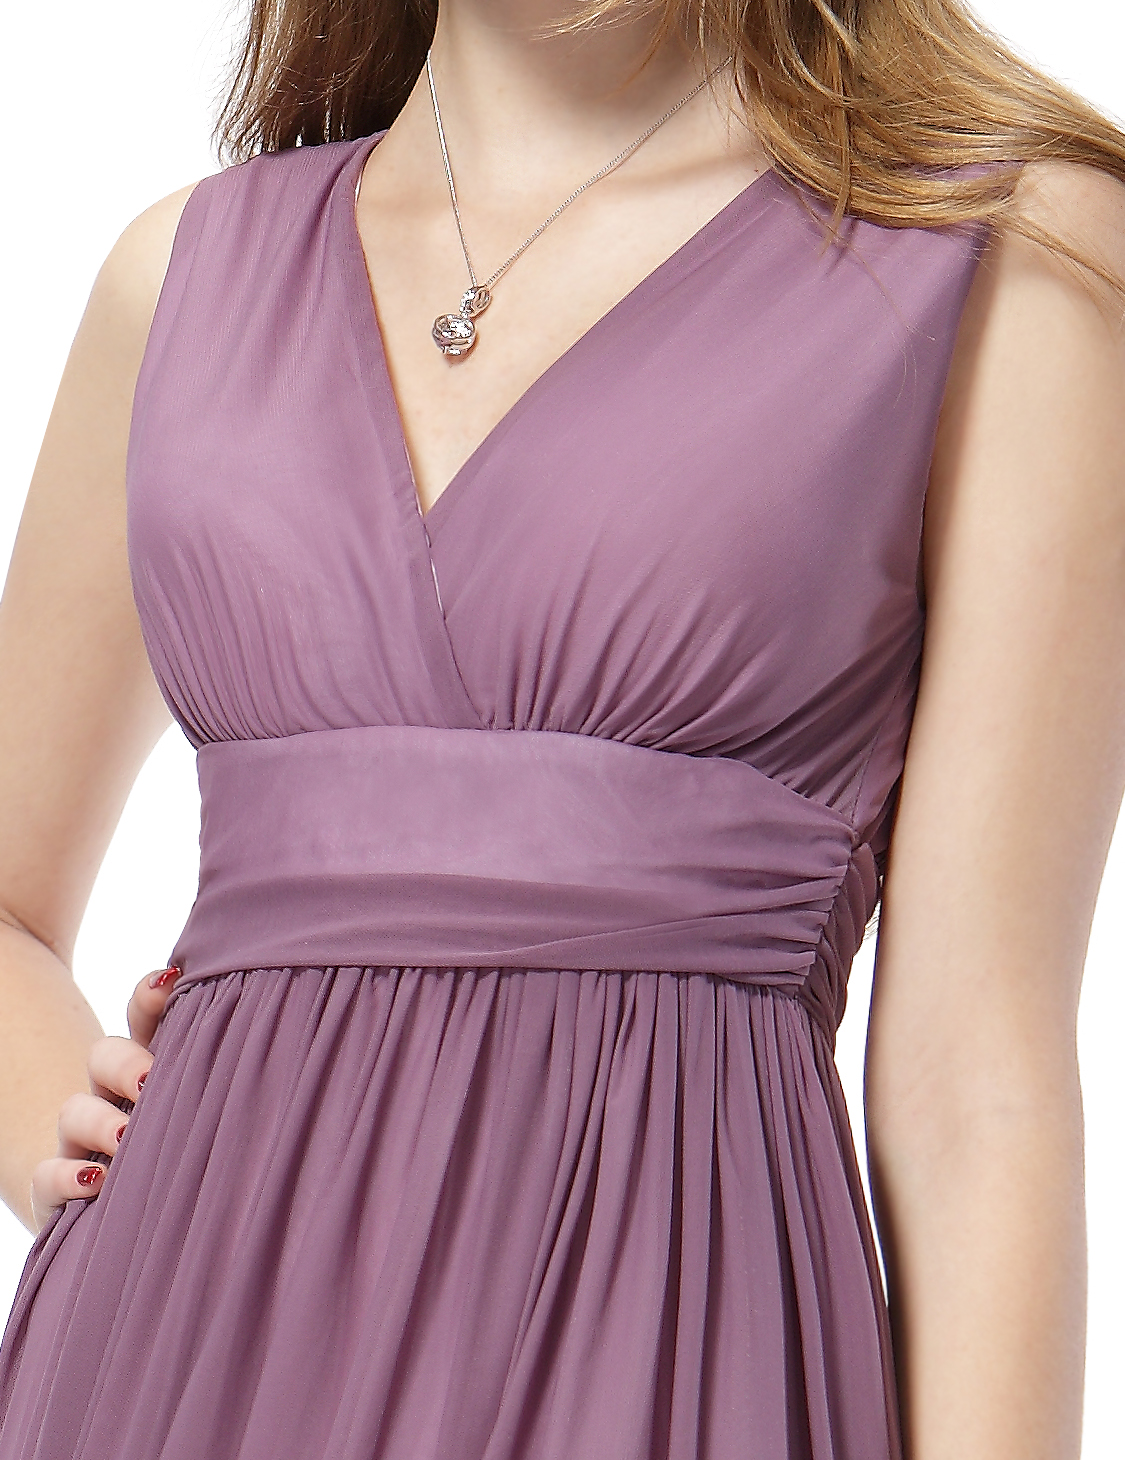 Women\'s V-neck Formal Cocktail Party Dresses Casual Dresses 0279B ...